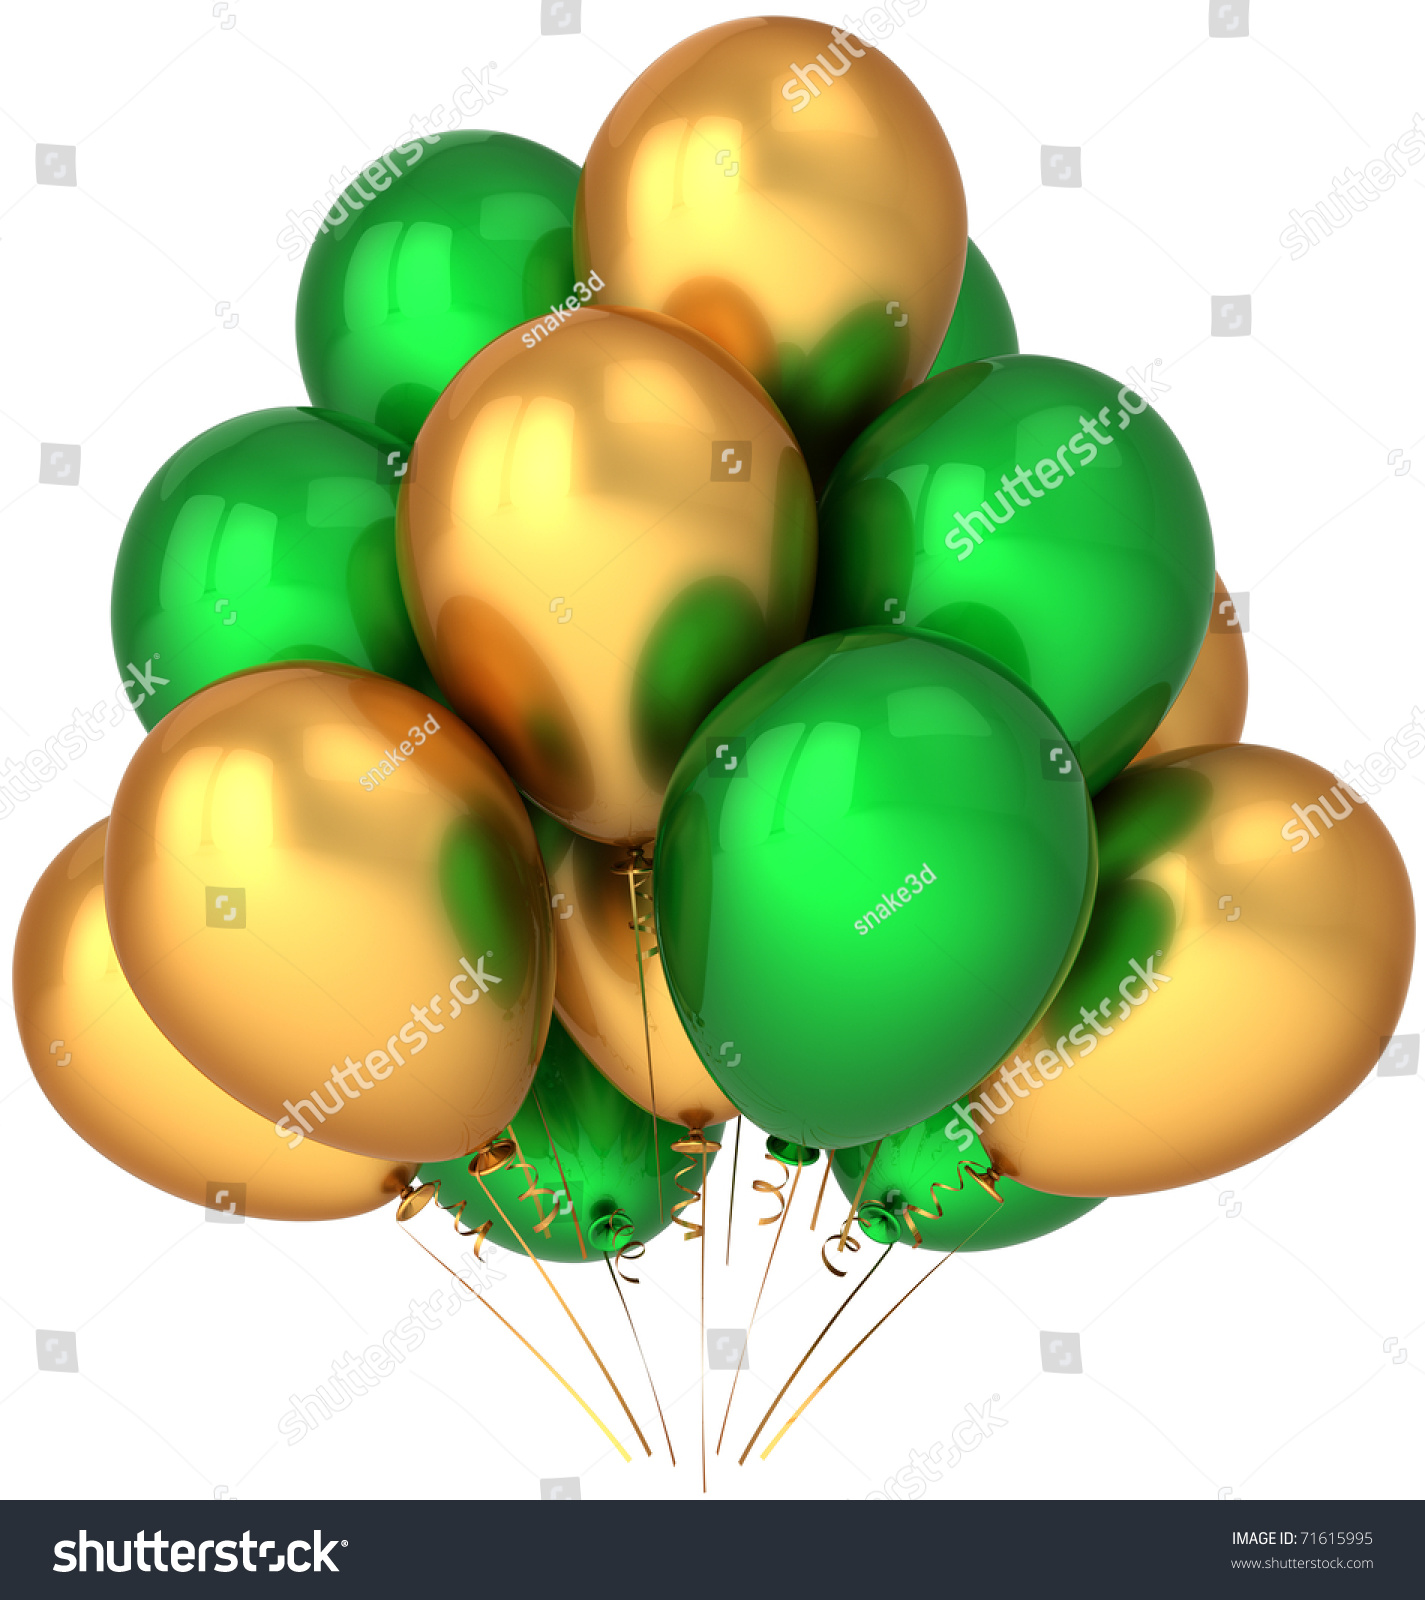 Party Balloons Gold Green Yellow Golden Birthday Decoration Anniversary  Graduation Retirement Holiday Celebrate Jubilee Greeting Card